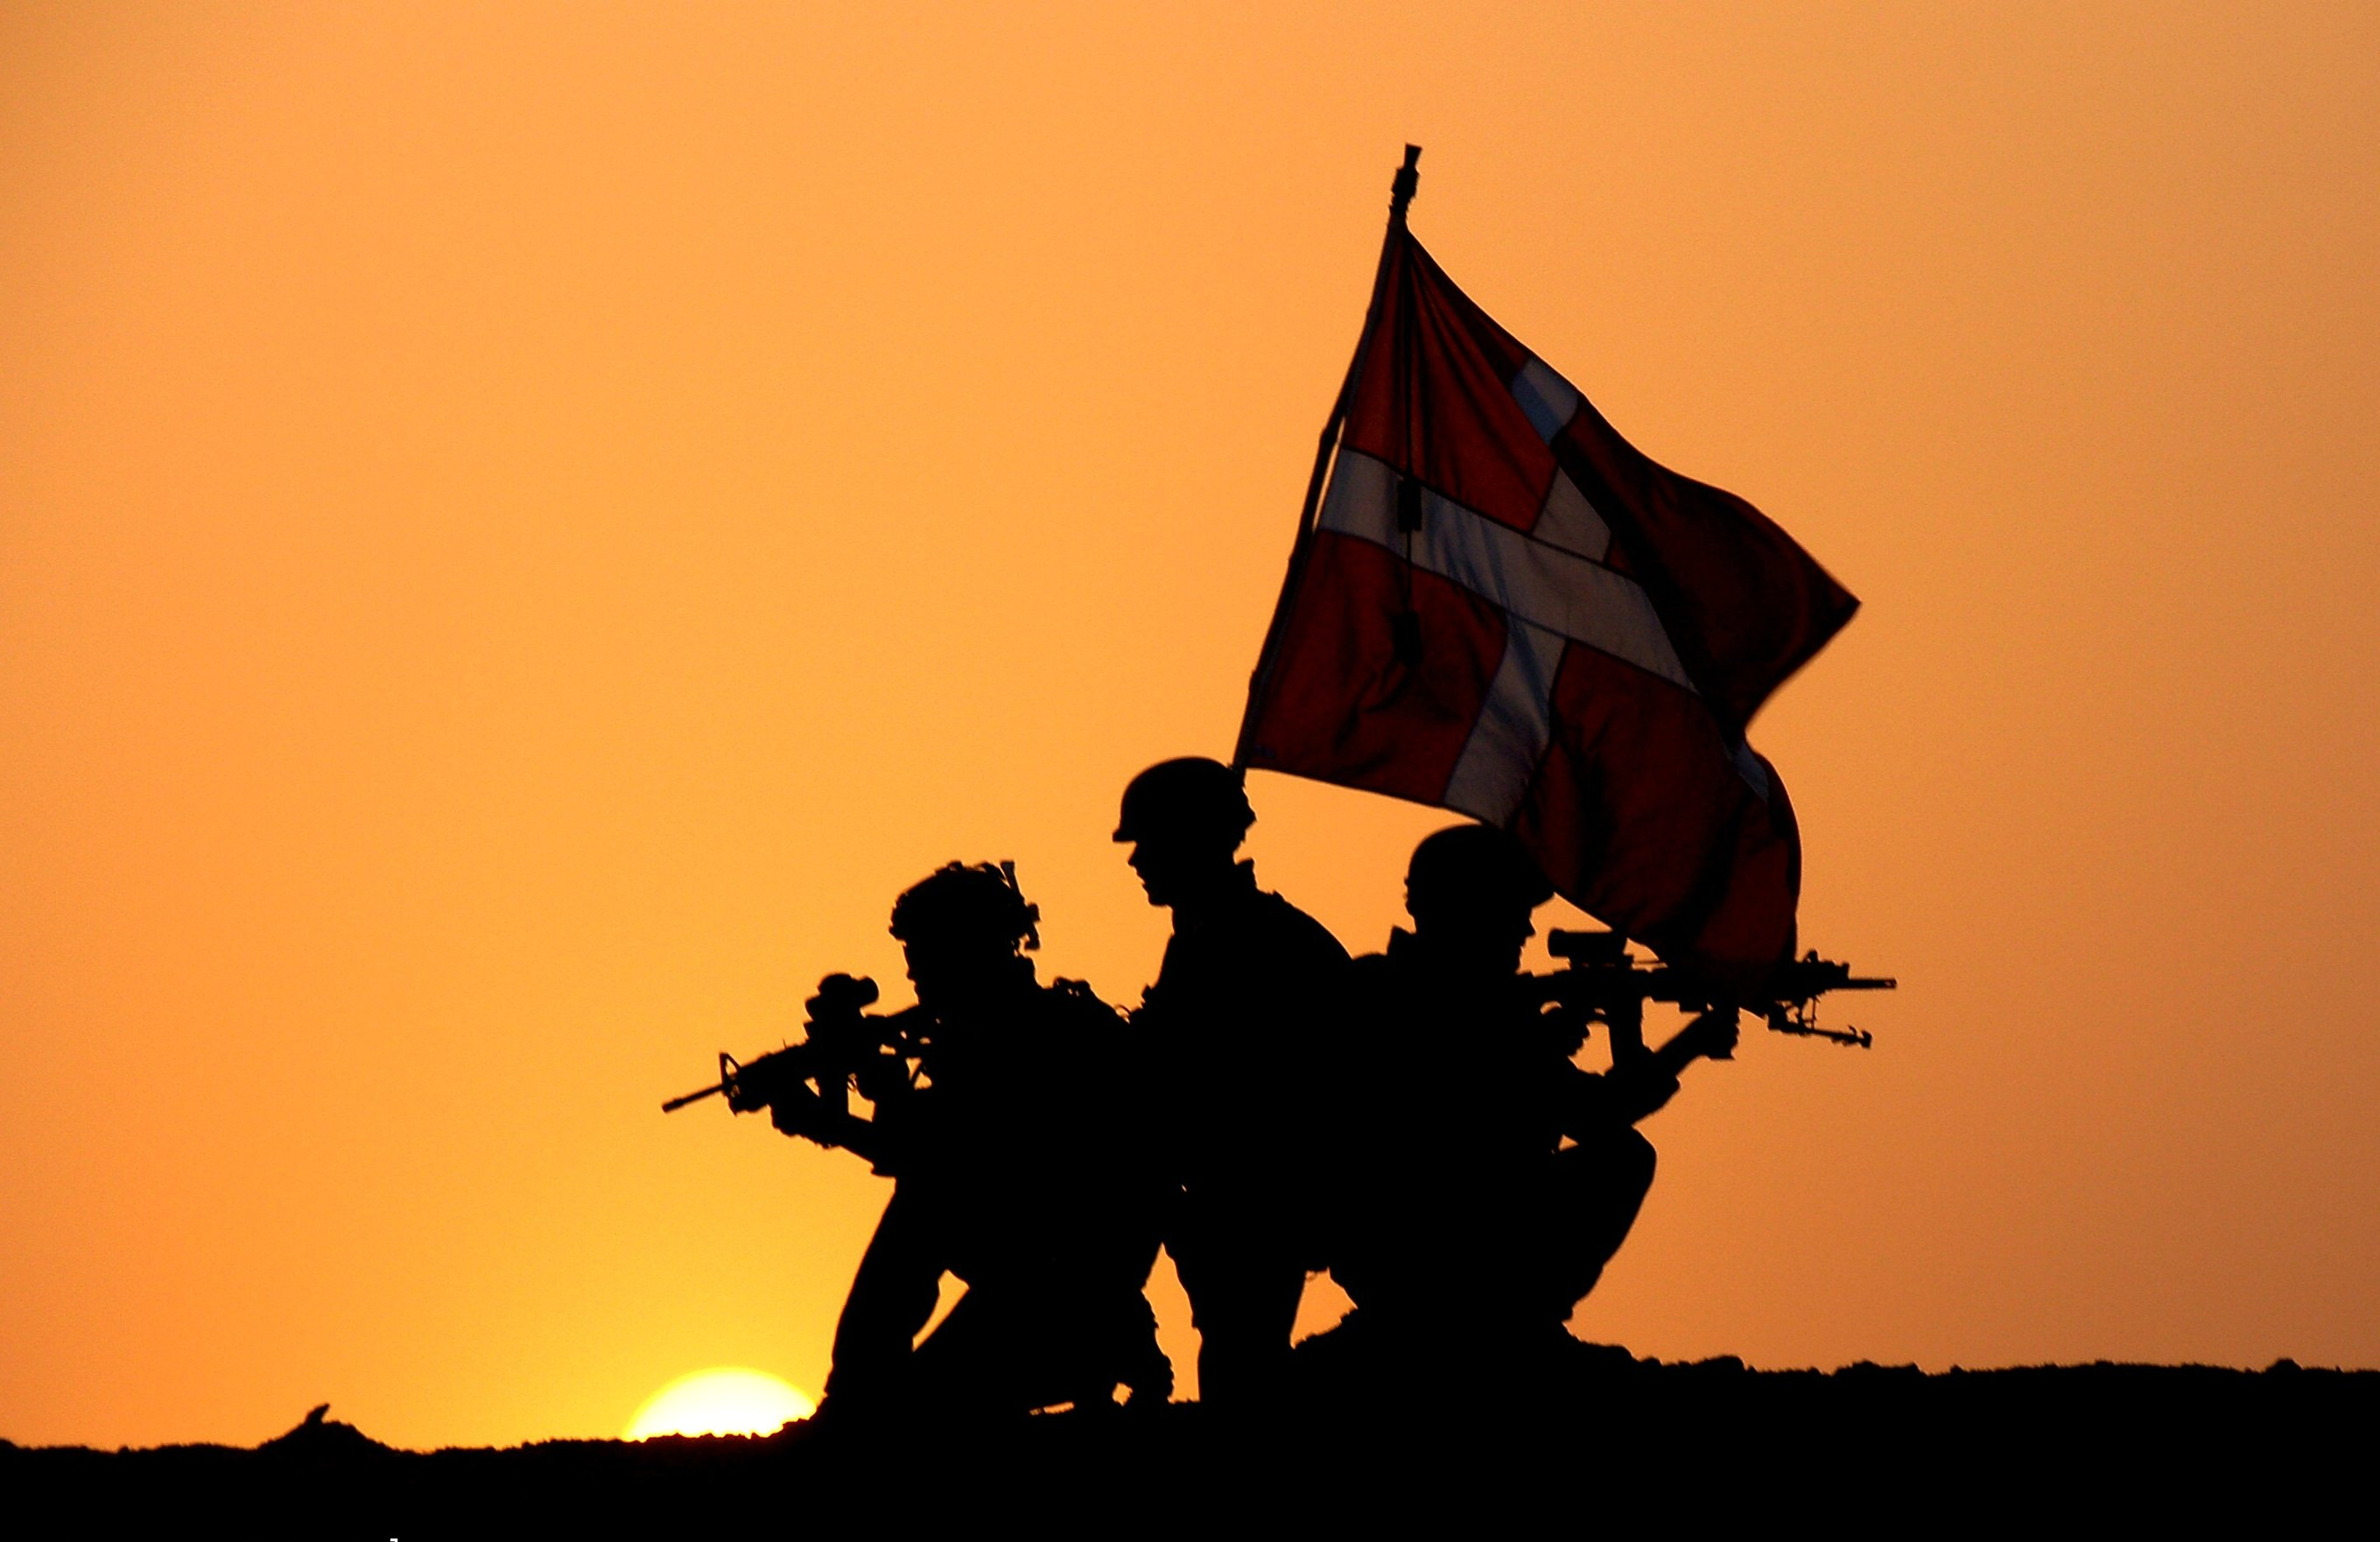 A hero shot. Photo: HOK – the soldiers' photos, 2008